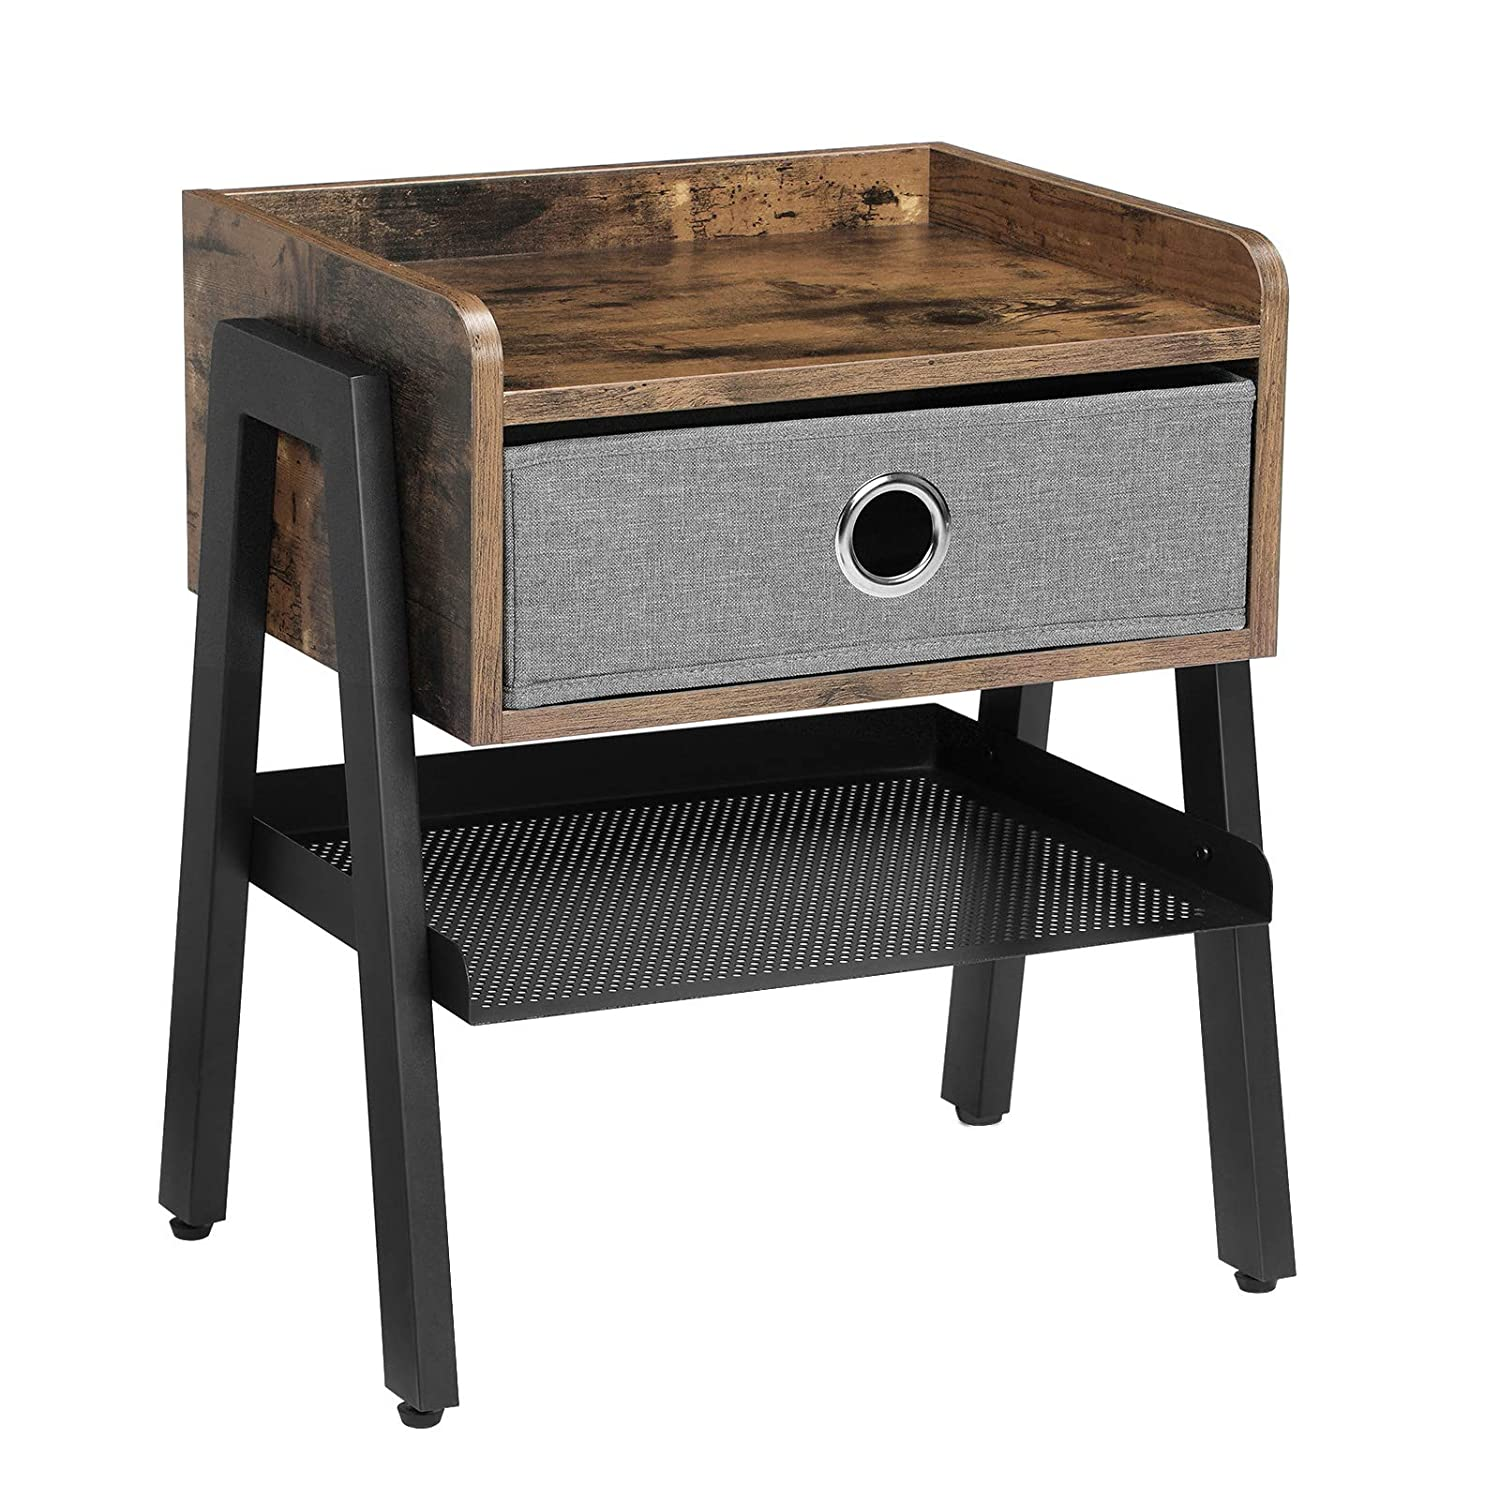 SONGMICS Industrial Nightstand, End Table with Metal Shelf, Side Table for Small Spaces, Wood Look Accent Furniture with Metal Frame ULET64X